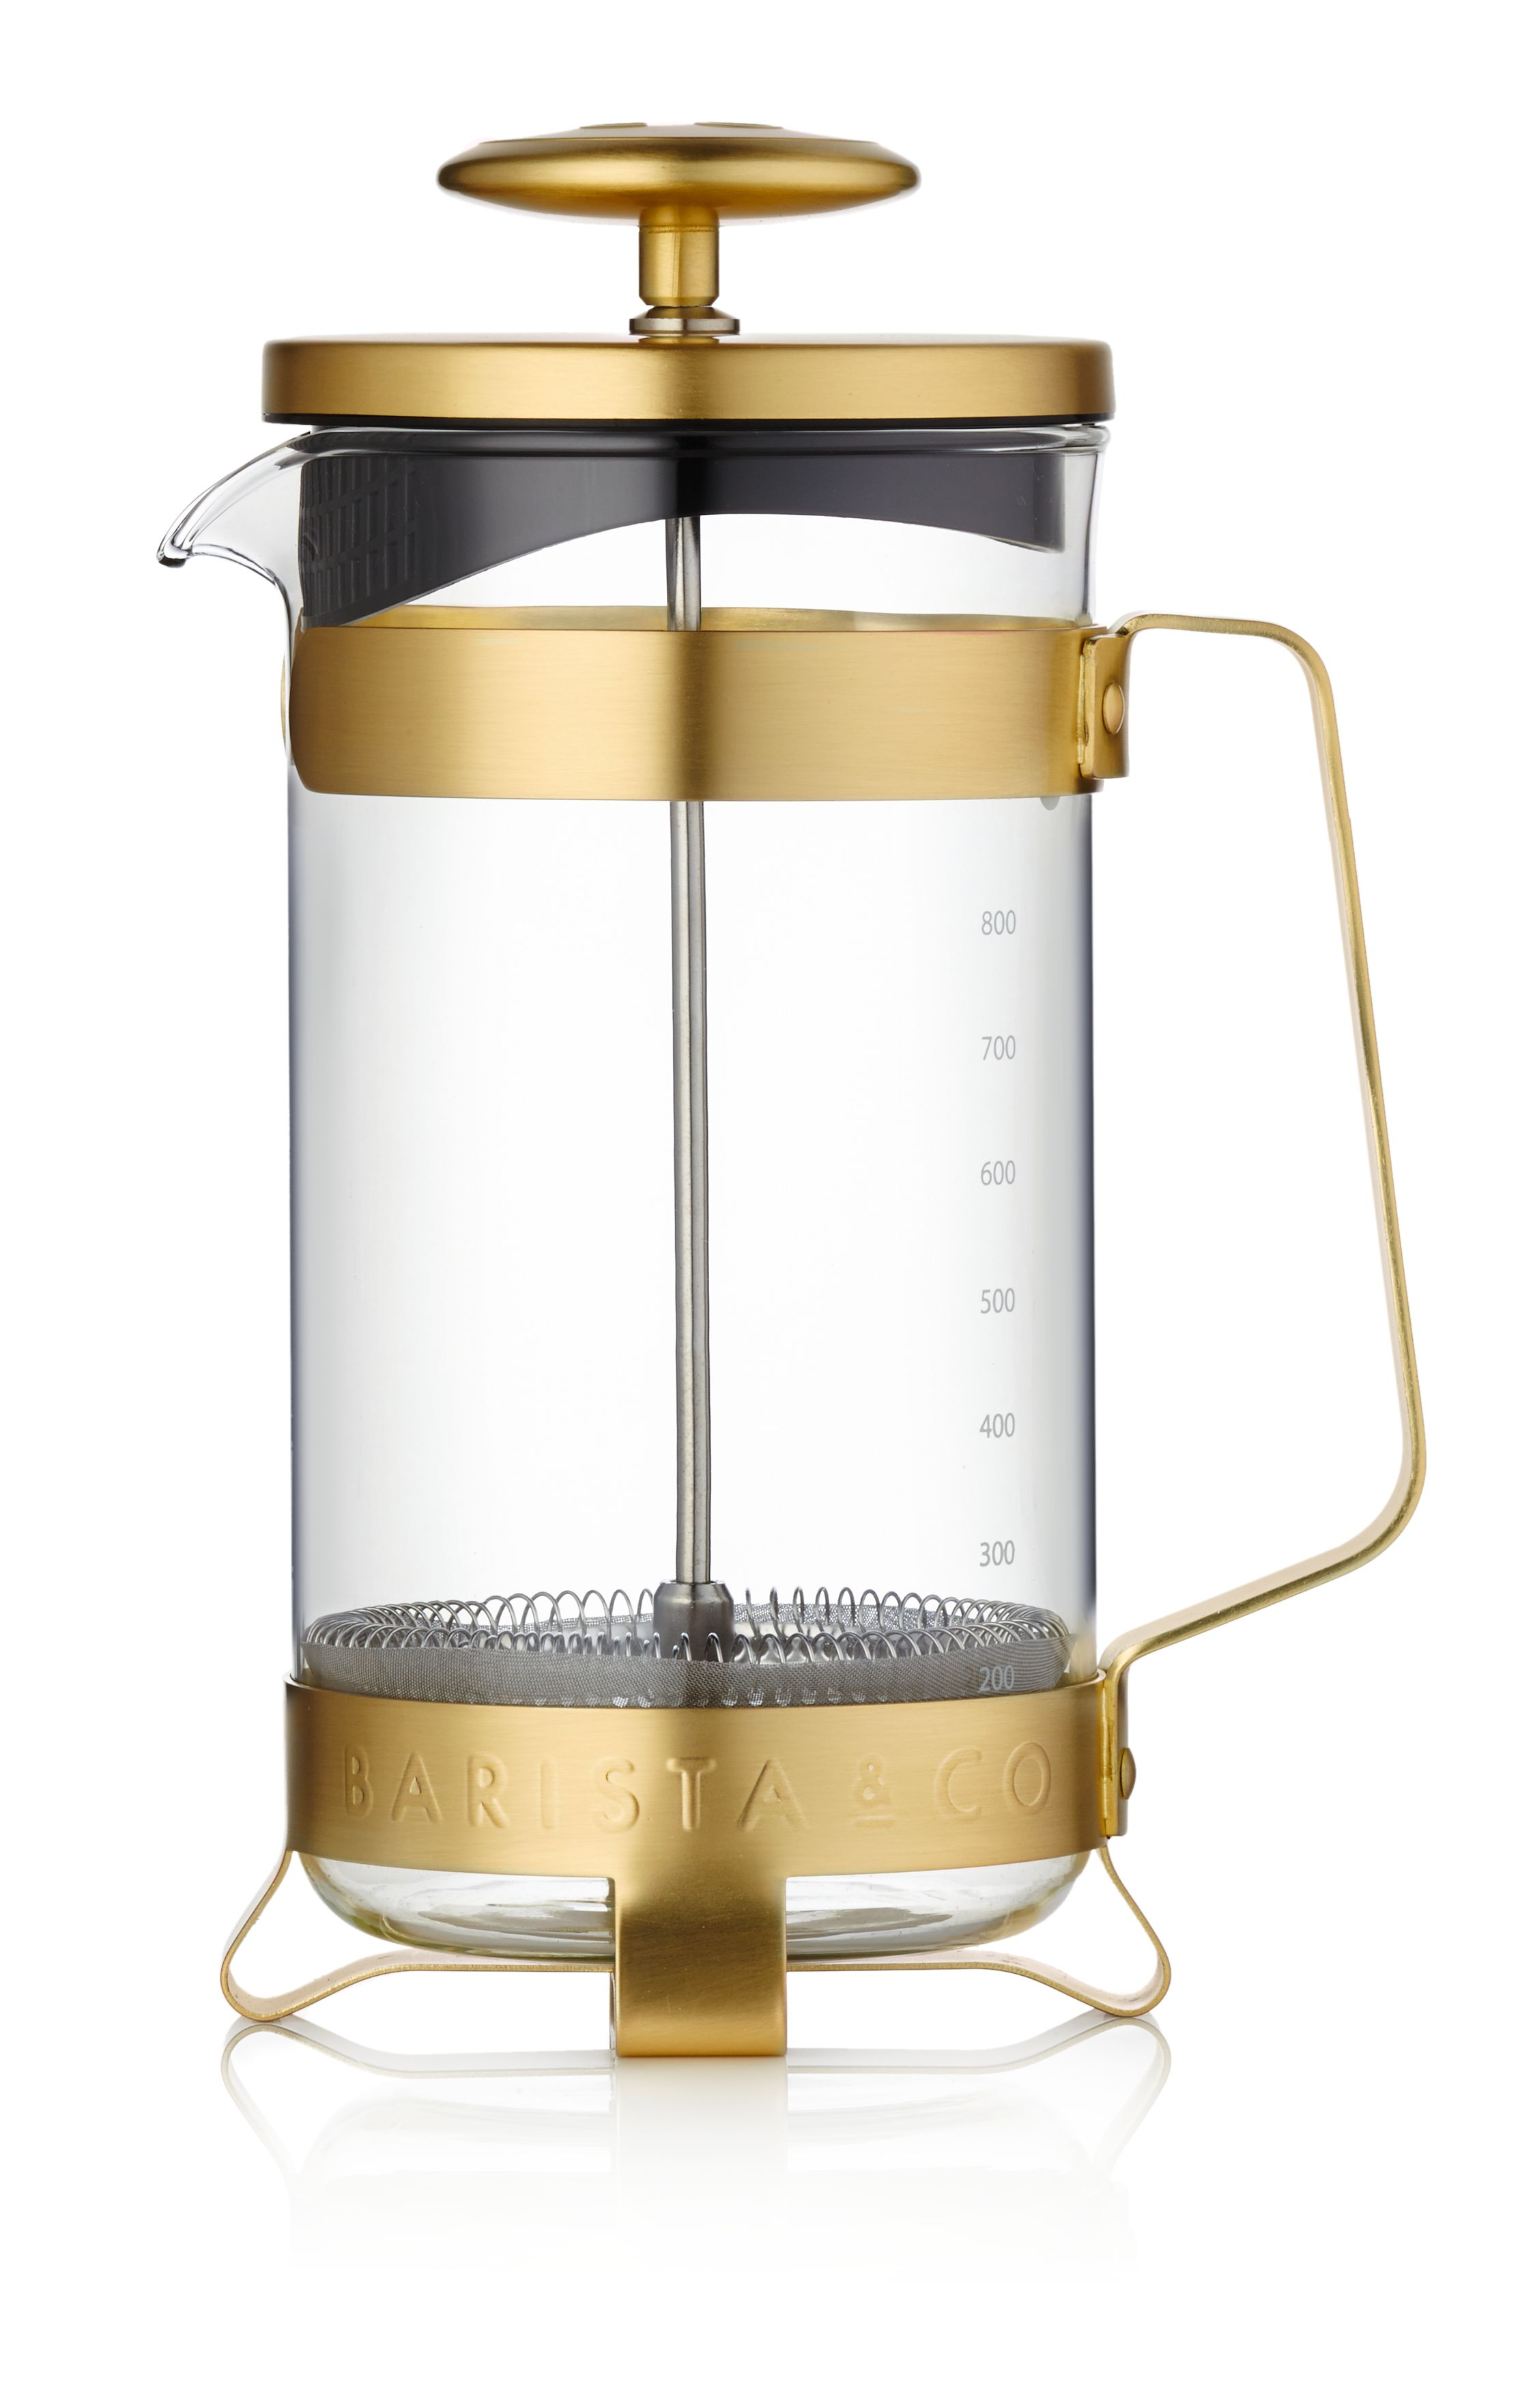 Image of Barista & Co 8 Cup Coffee Press, Midnight Gold, Gold